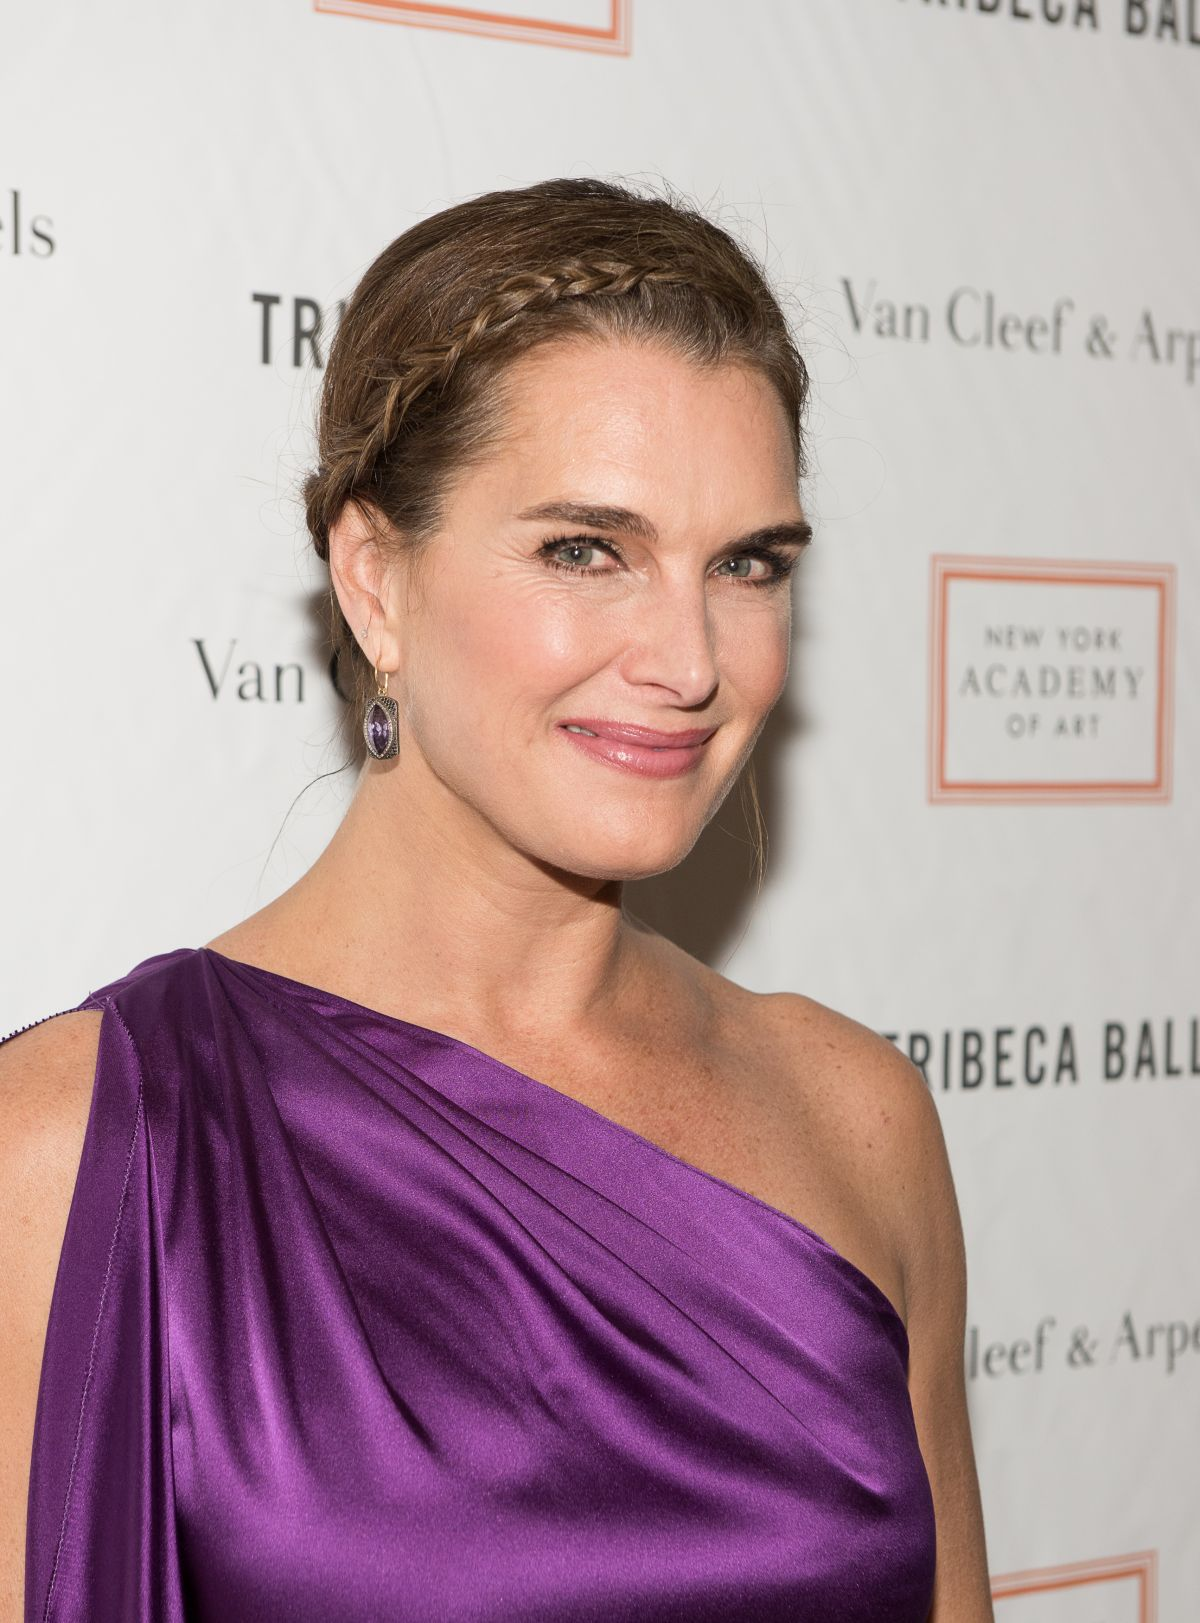 BROOKE SHIELDS at 2015 Tribeca Ball in New York - HawtCelebs ...